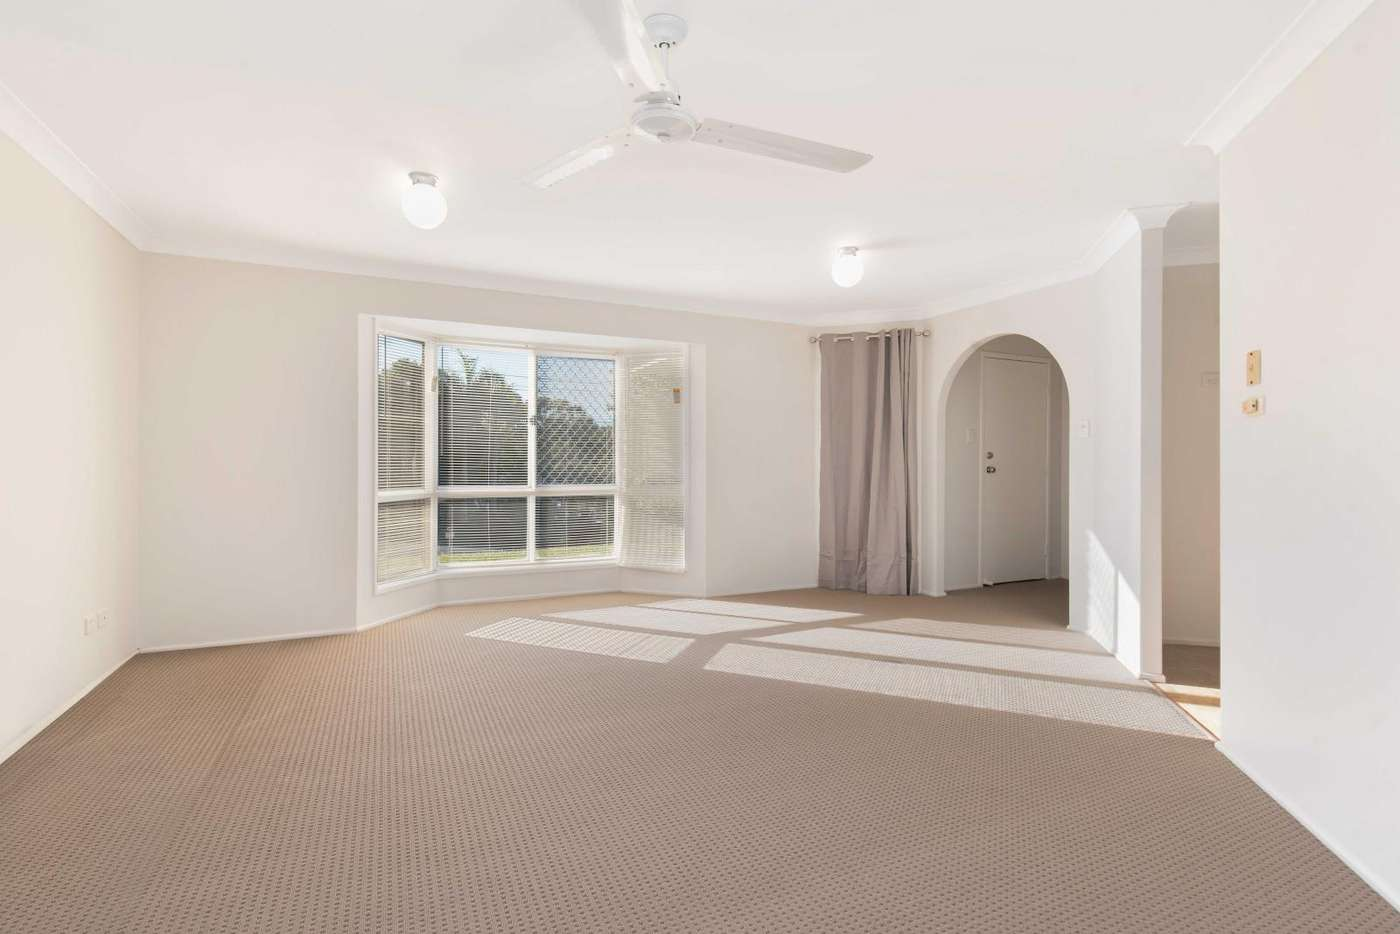 Main view of Homely house listing, 13 Narcamus Crescent, Shailer Park QLD 4128